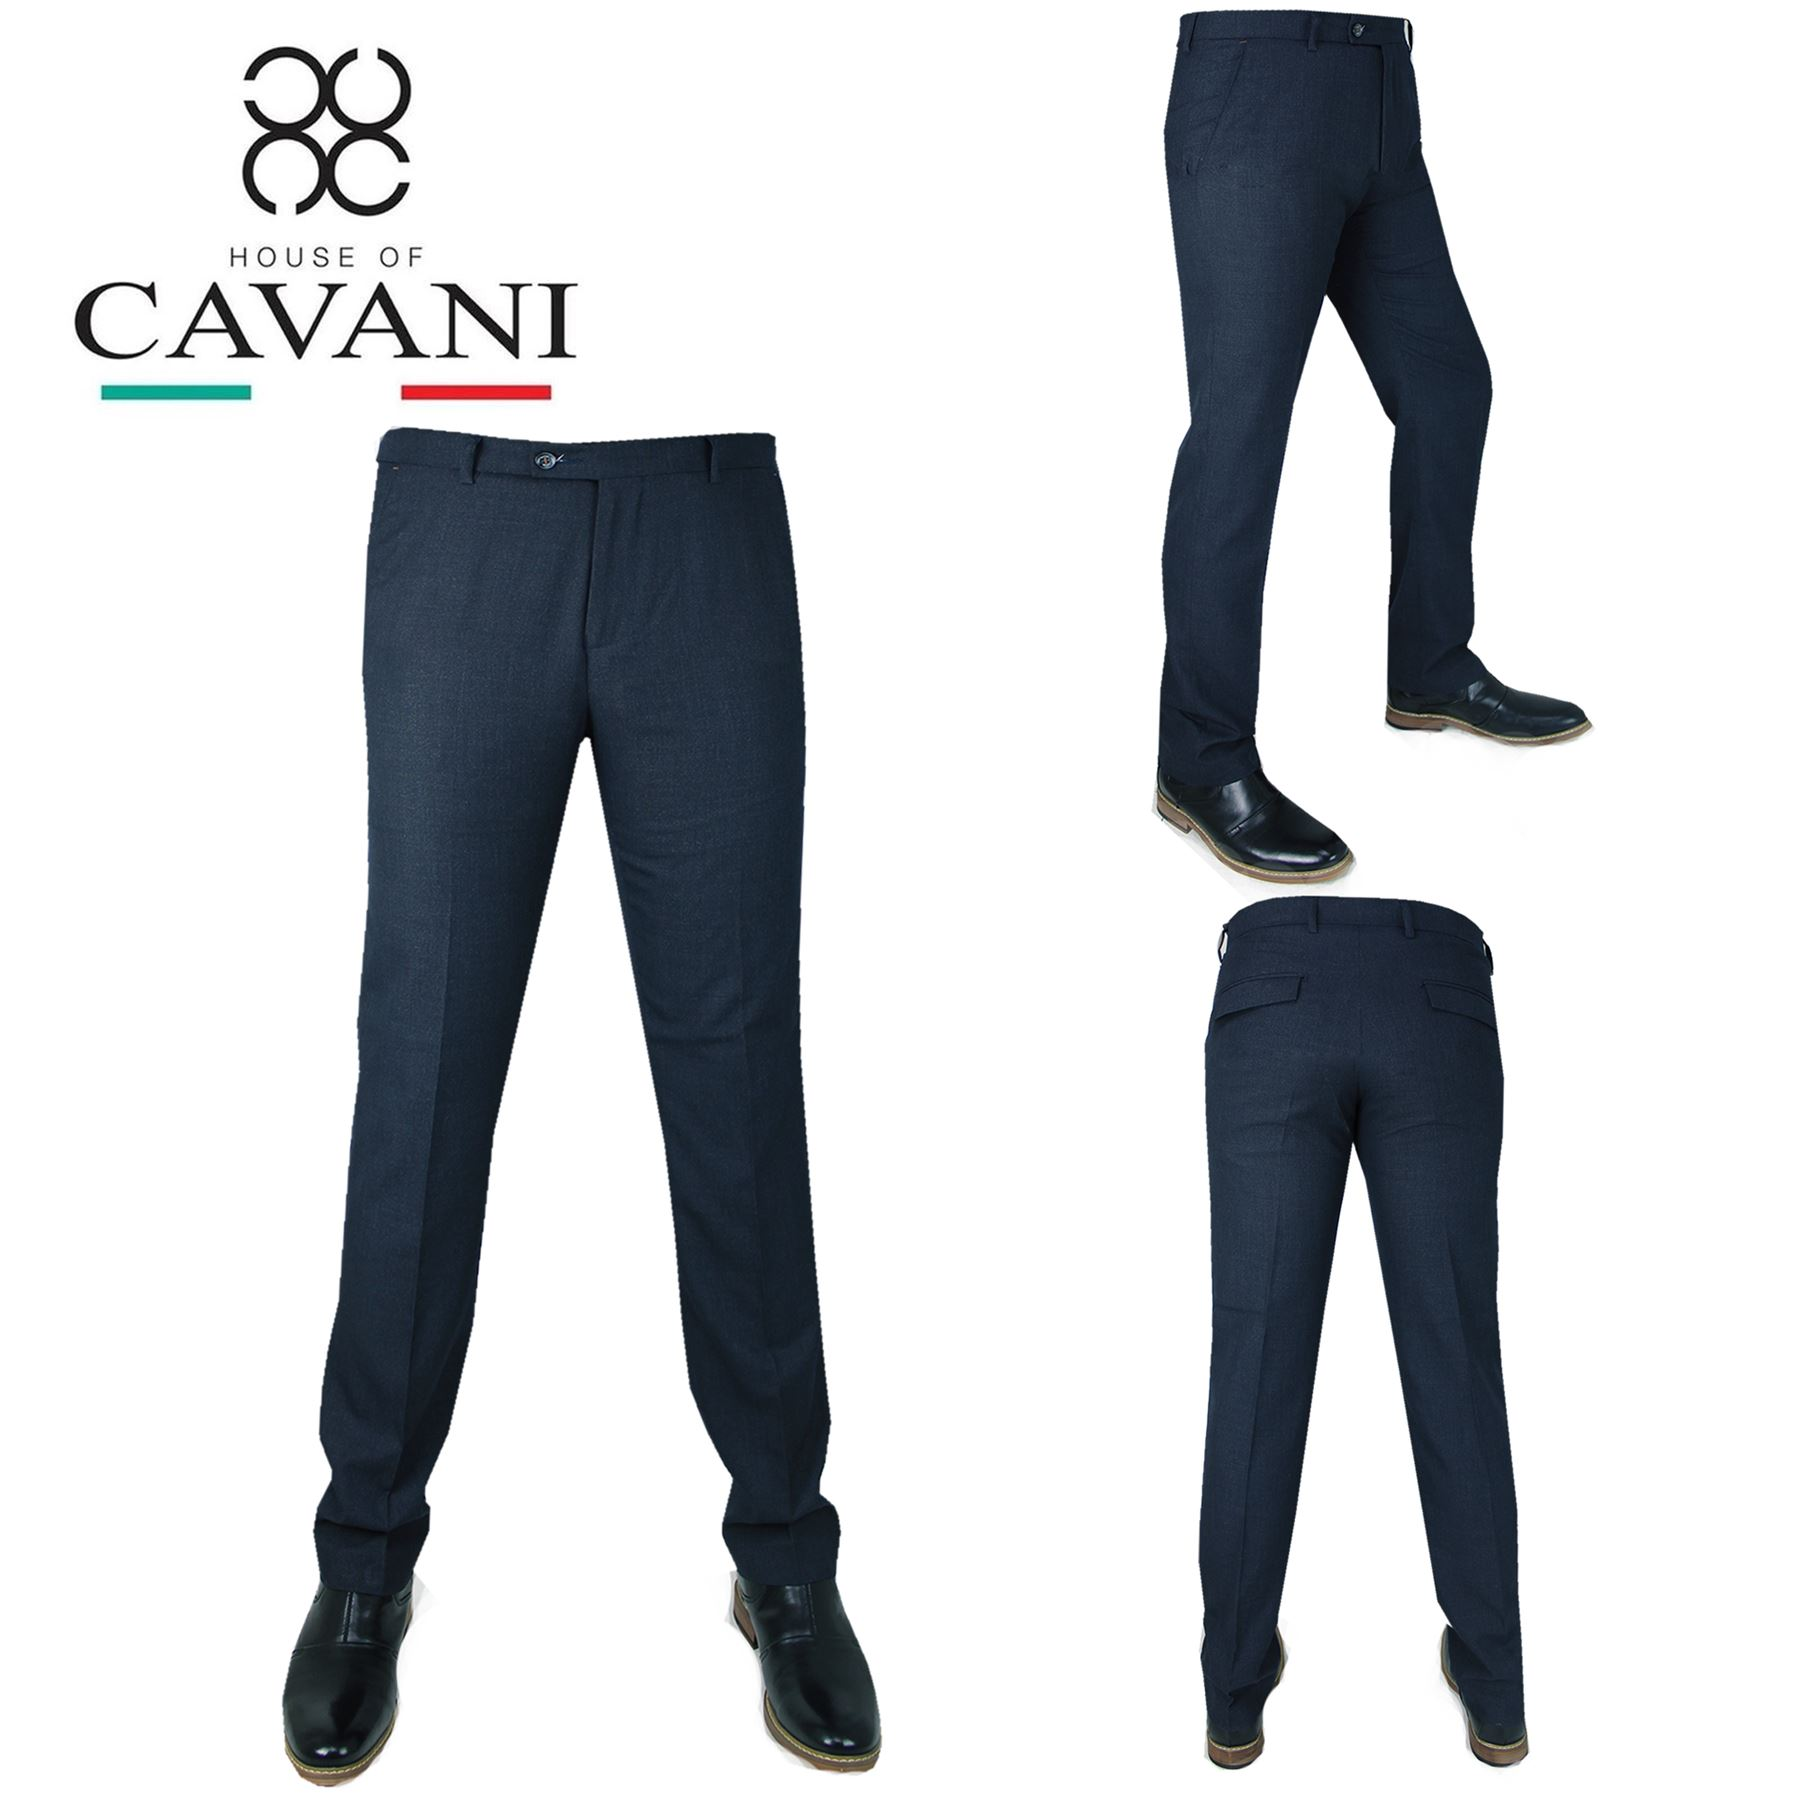 1b718a1214f0d Details about Mens Cavani Smart Formal Casual Plain Navy Pants Regular Fit  Suit Trousers